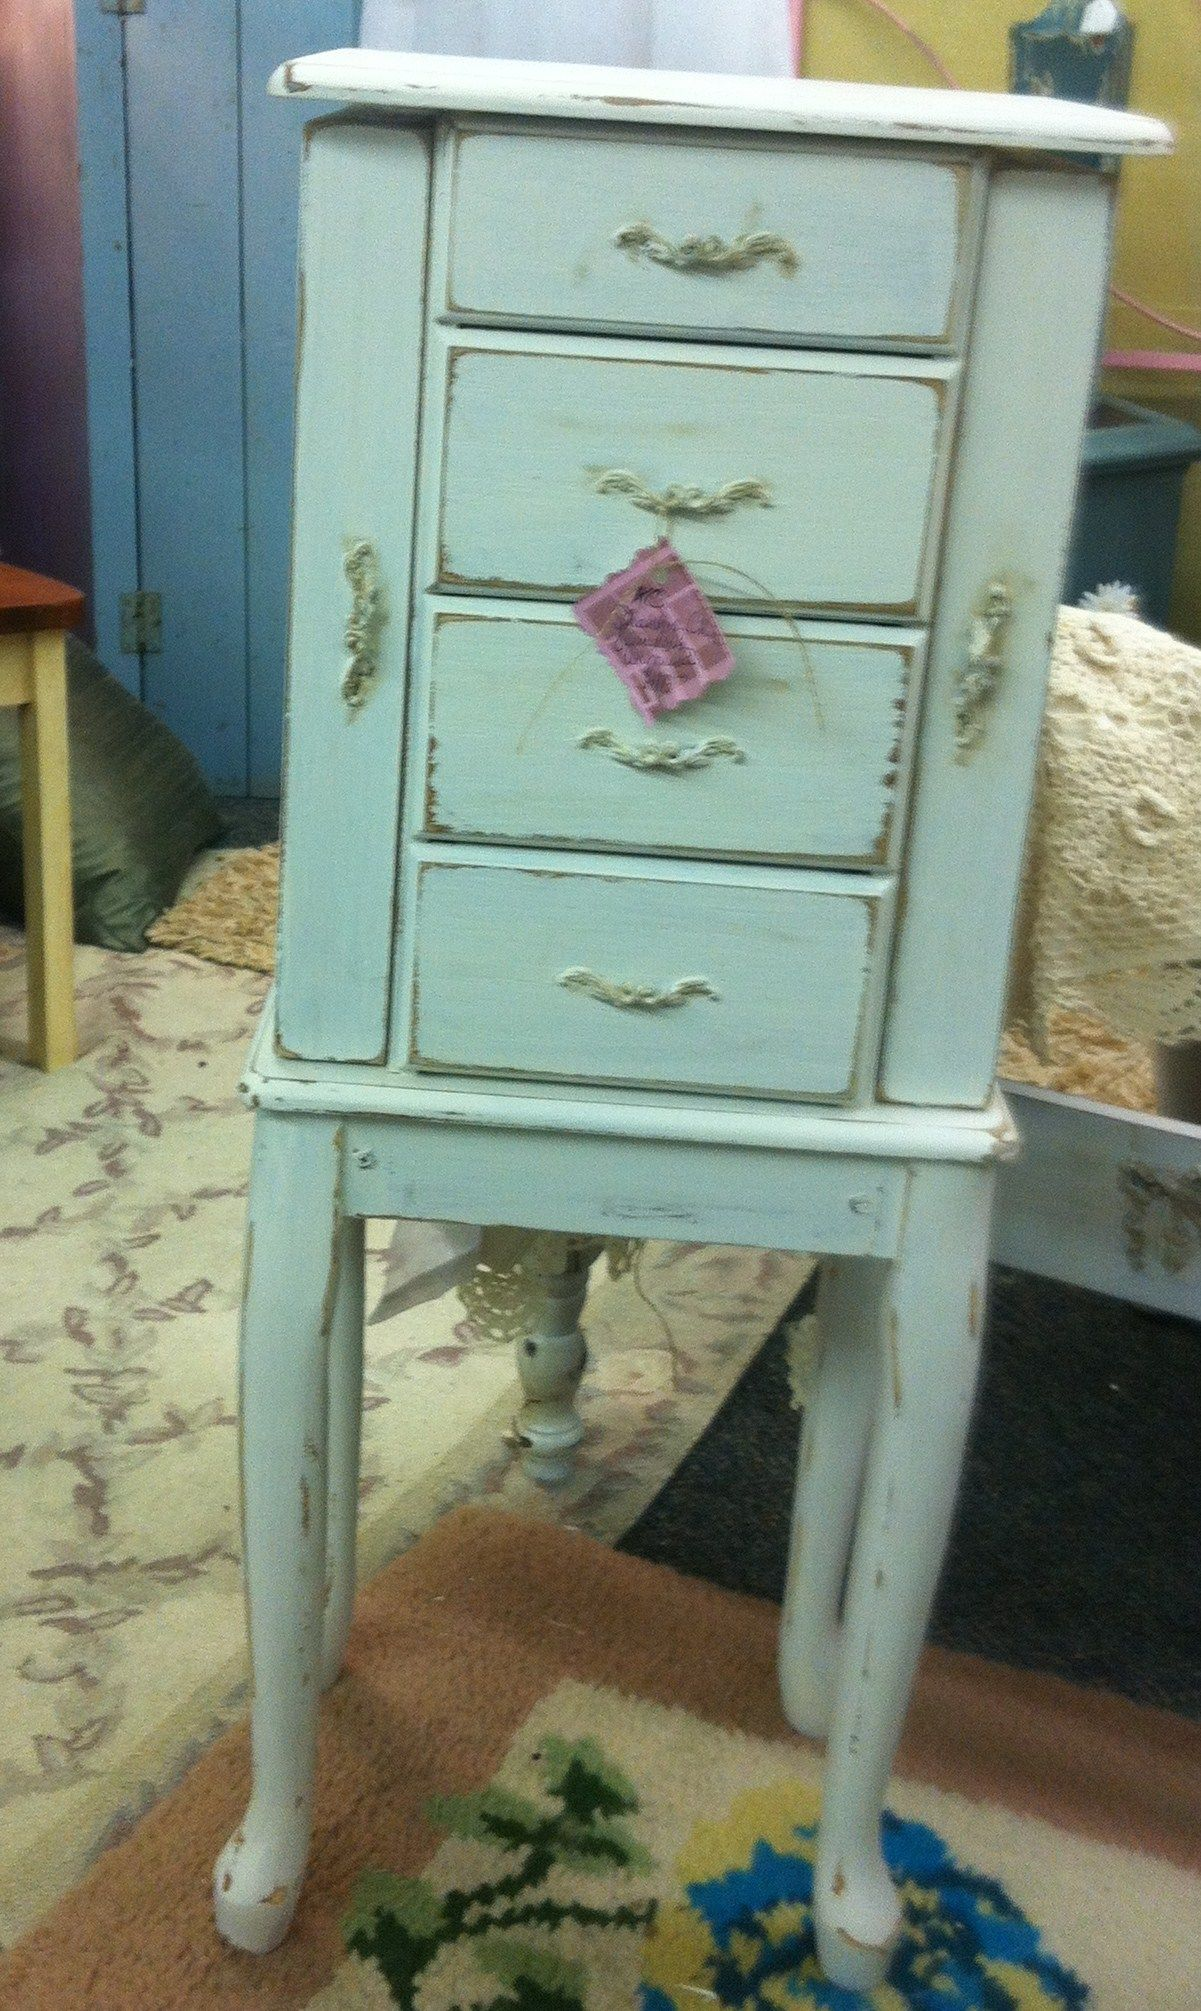 Shabby Chic Jewelry Armoires : shabby, jewelry, armoires, Shabby, Jewelry, Armoire, Jewellery, Armoire,, Painted, Suitcase,